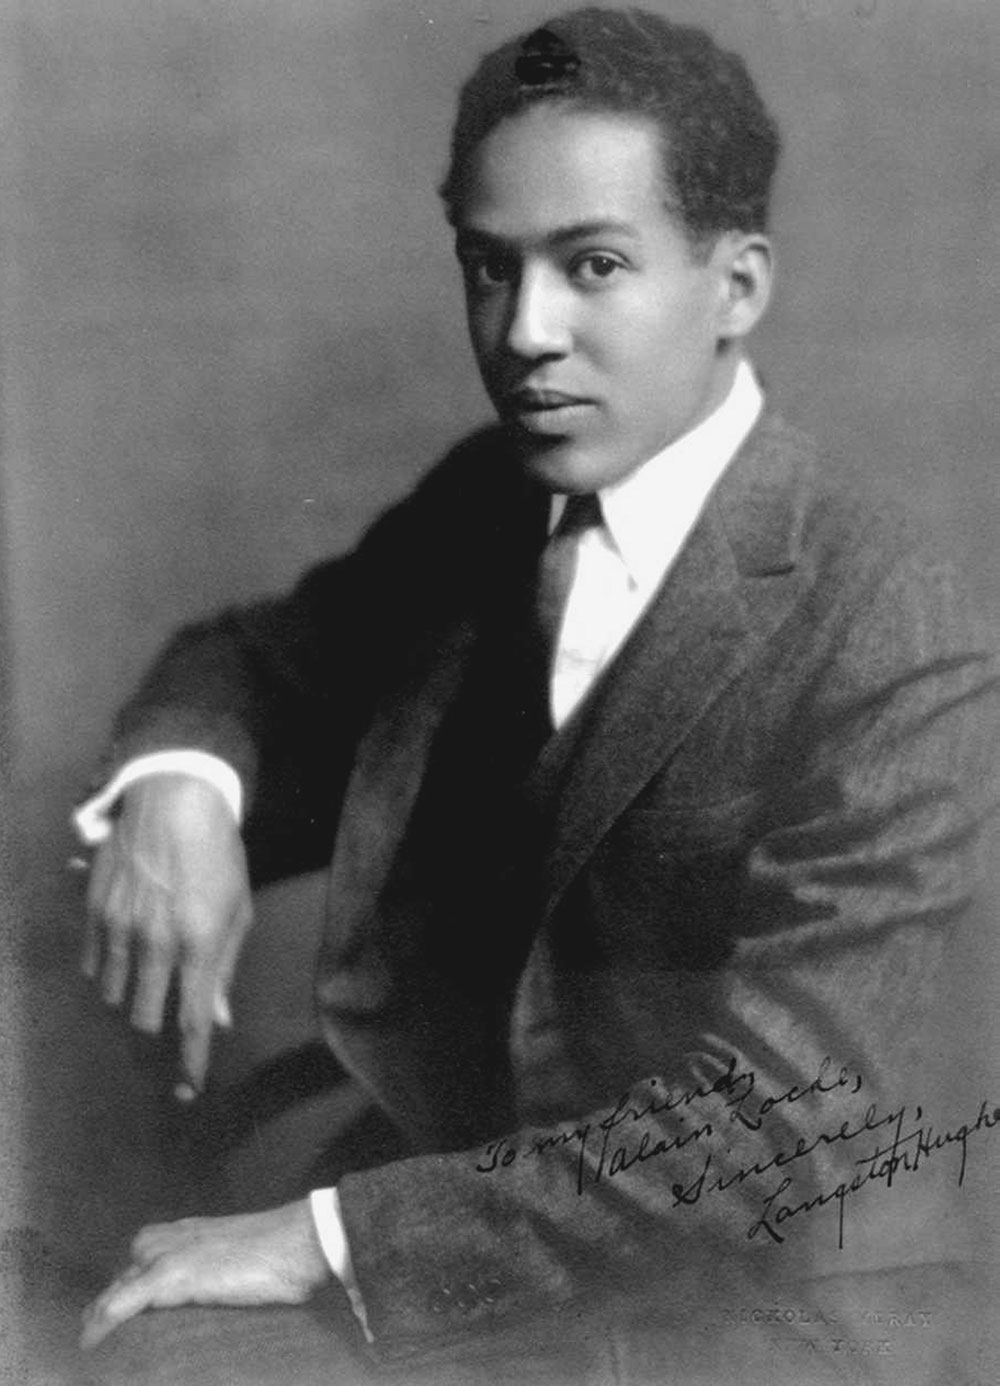 Langston Hughes. Photo courtesy of the Moorland-Spingarn Research Center, Howard University Archives